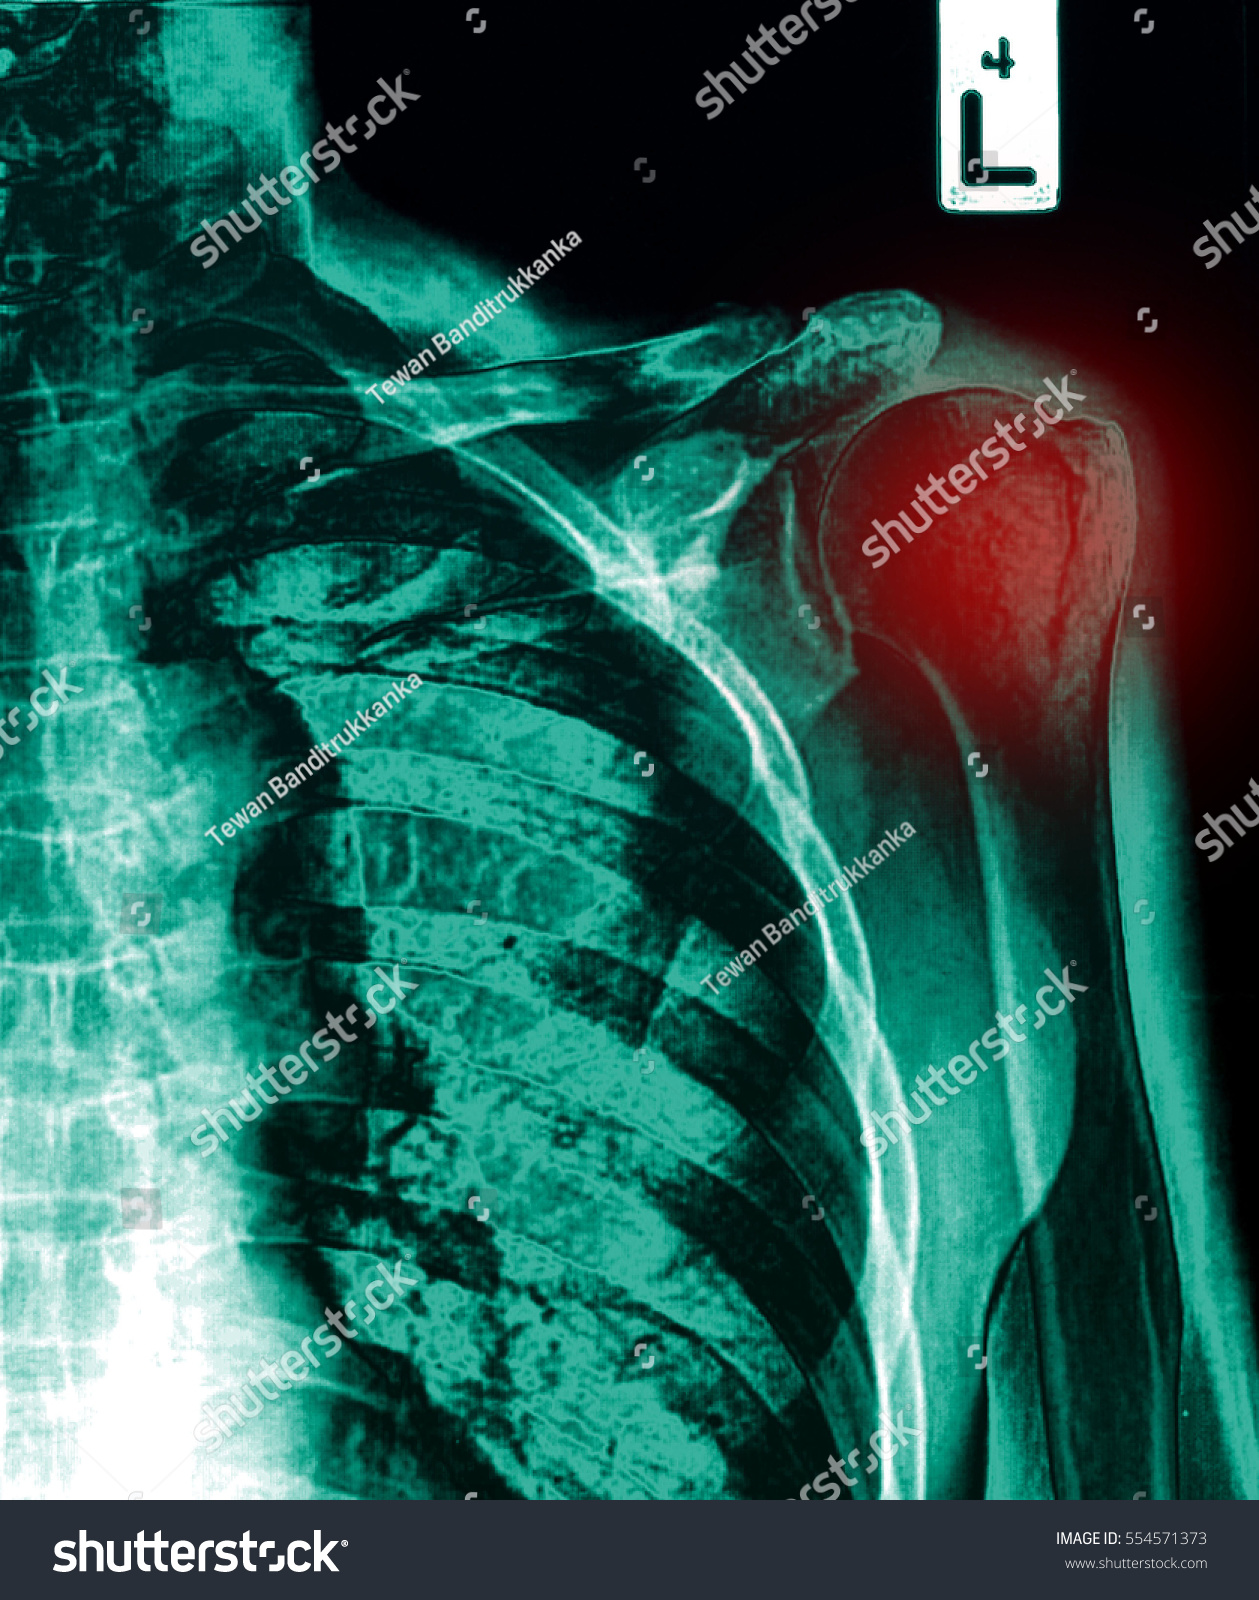 Shoulder Xray Image Showing Proximal Humeral Stock Photo (Edit Now ...